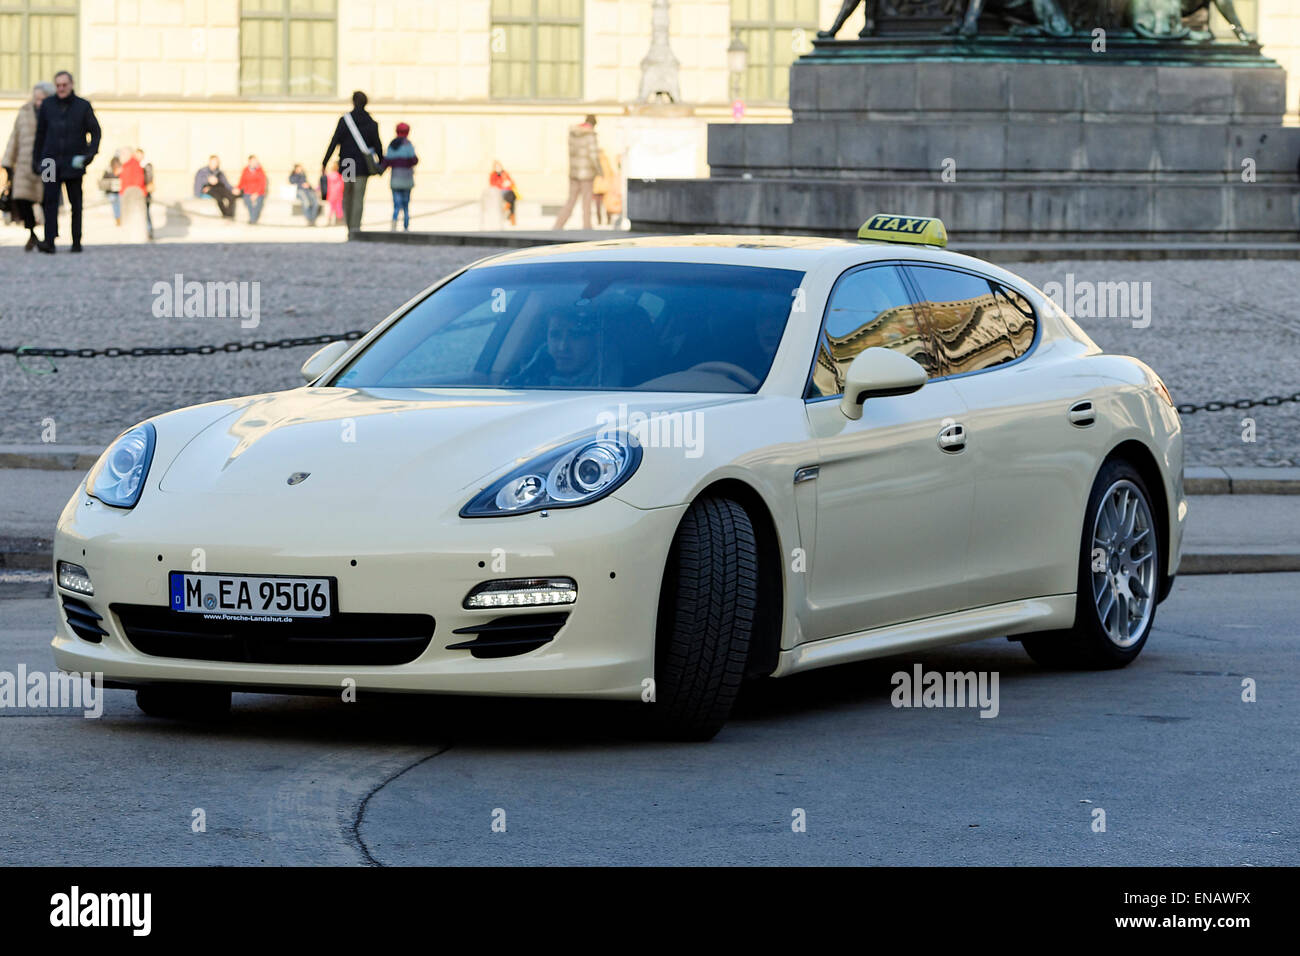 porsche panamera taxi car munich upper bavaria germany europe stock photo royalty free. Black Bedroom Furniture Sets. Home Design Ideas